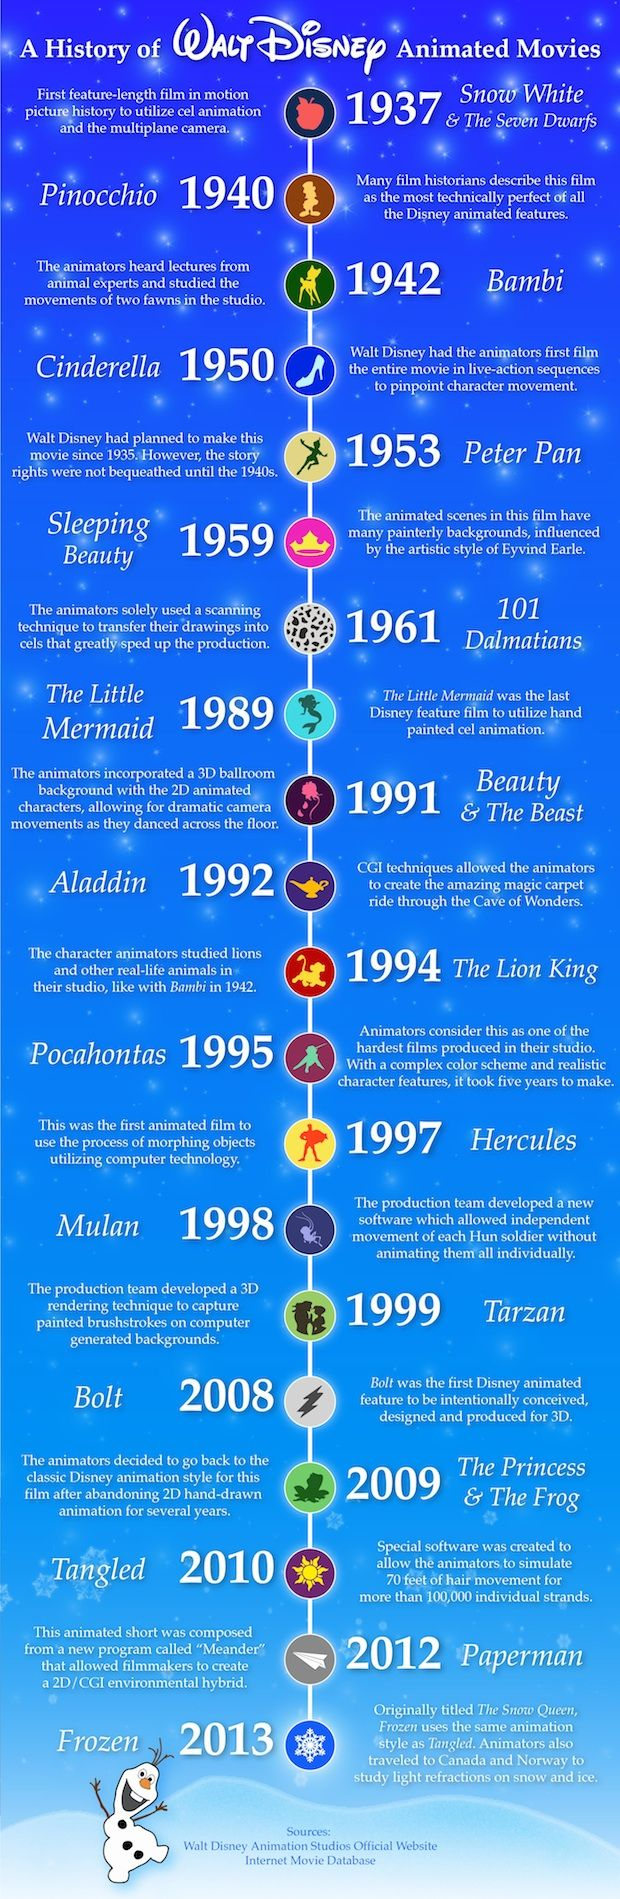 Timeline of Disney films. I love looking at how Disney has evolved over time!